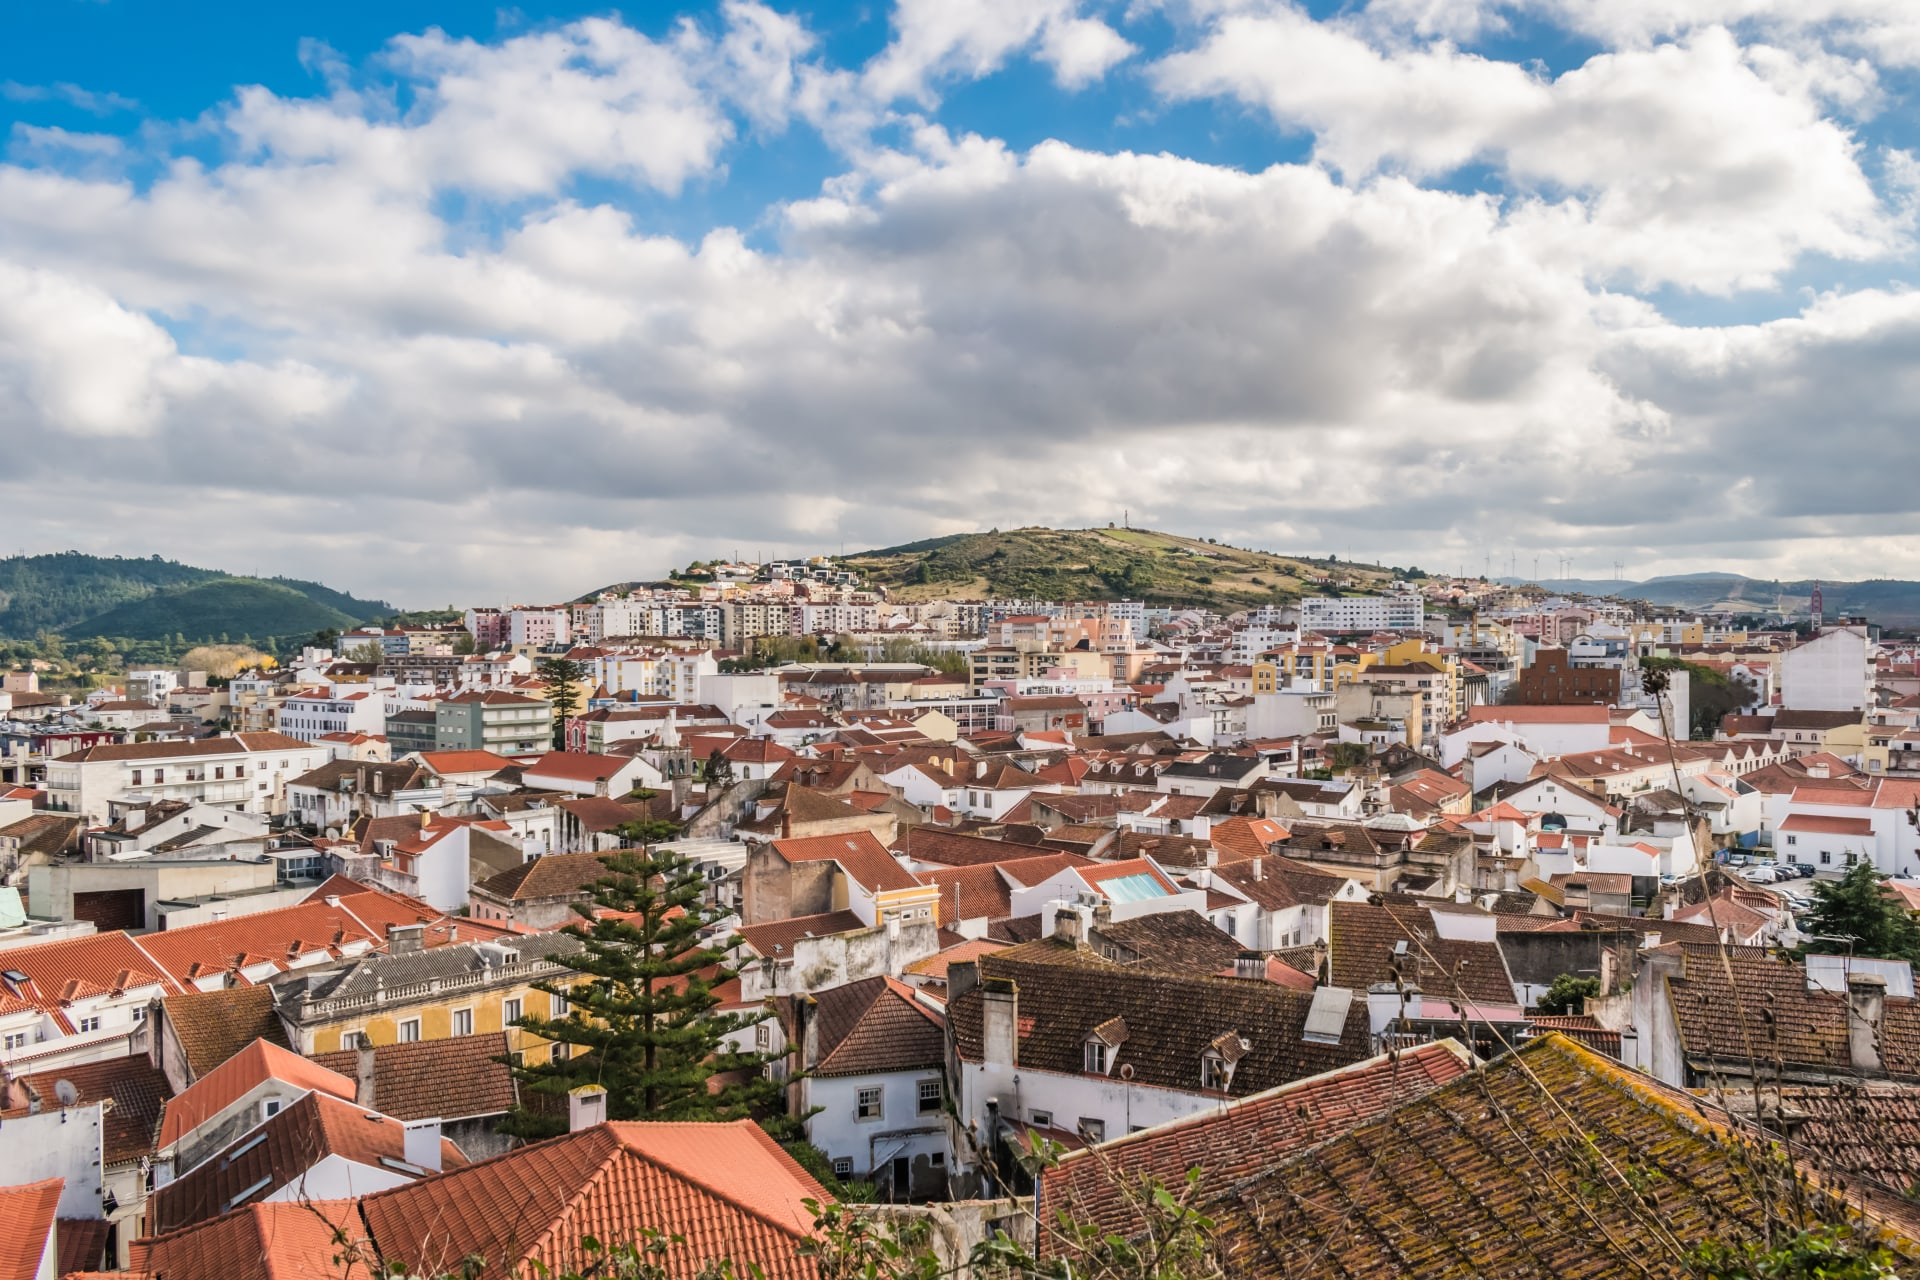 Torres Vedras cover image